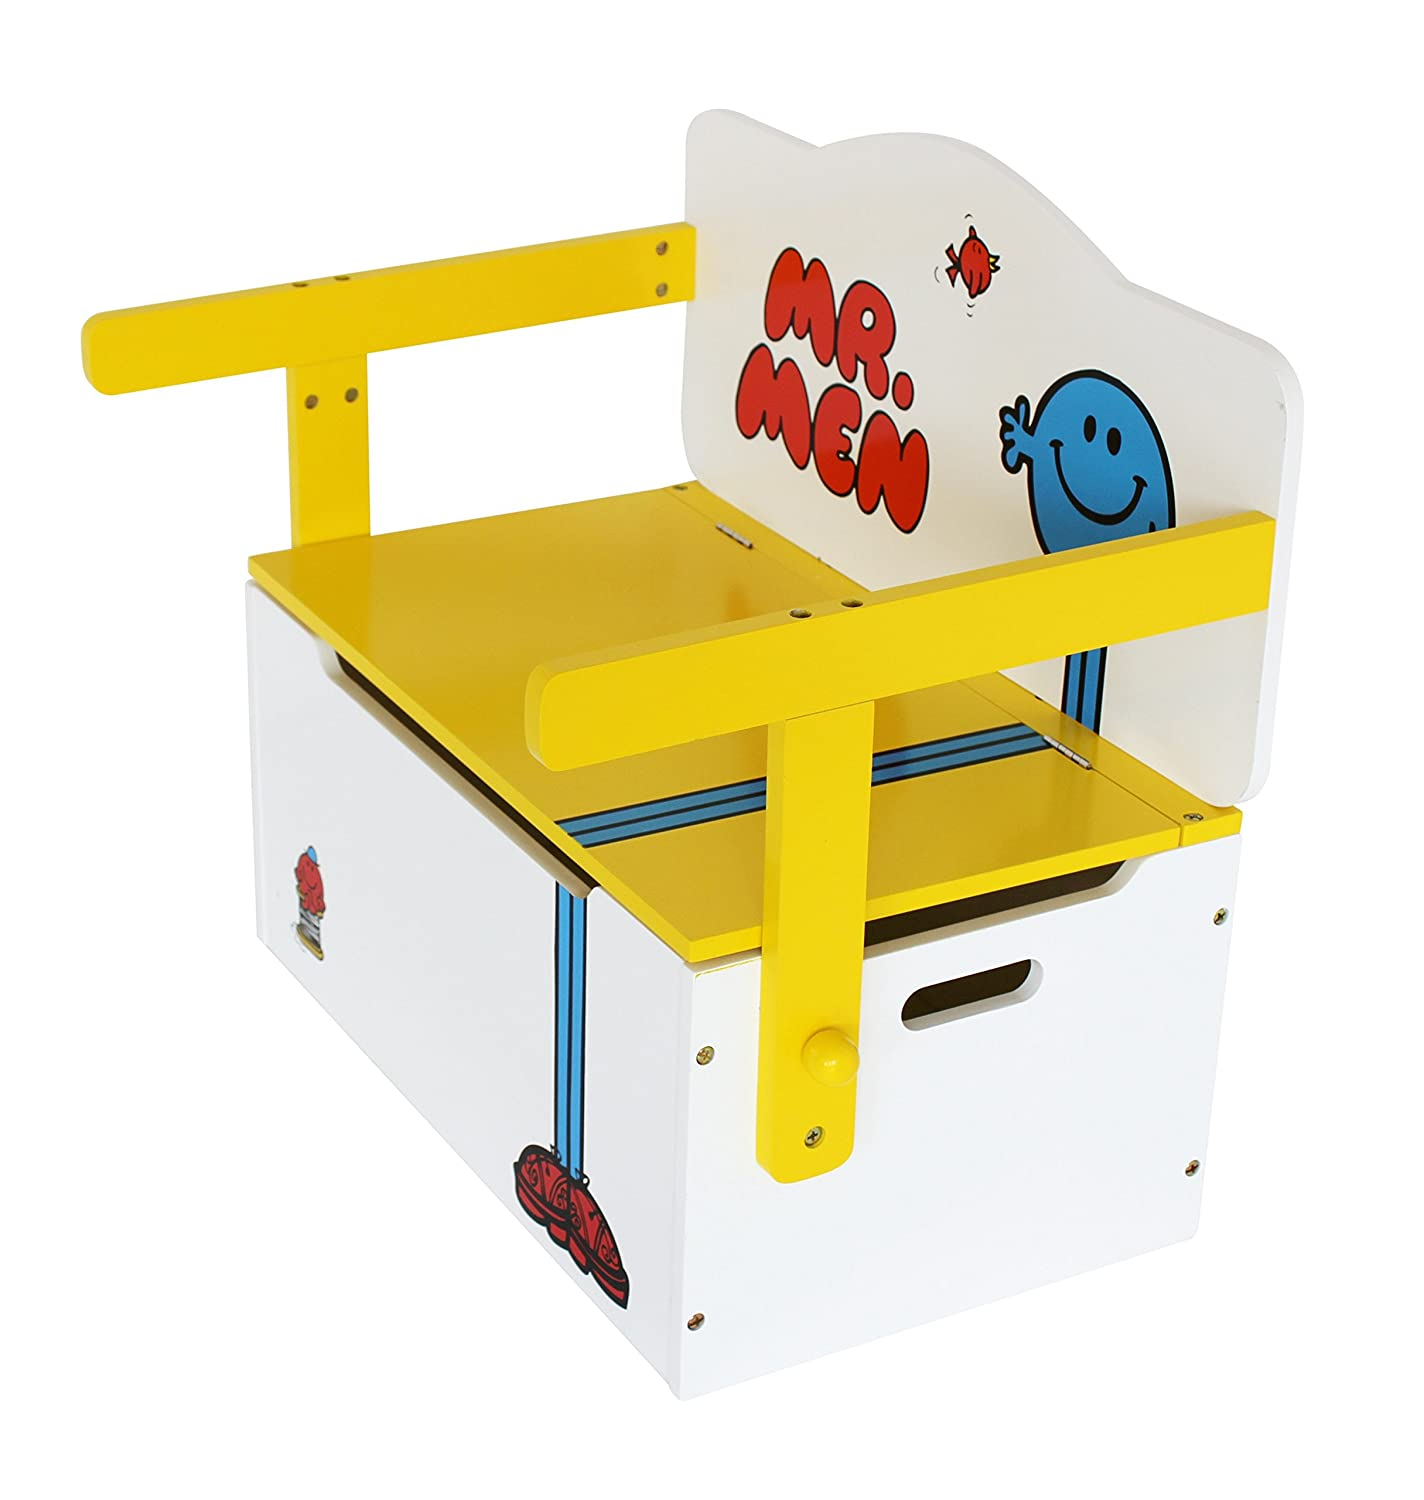 Mr Men - Childrens Kids 3in1 Wooden Convertible Toy Box+Bench & Table+Chair - by Kiddi Style The Style Products Company